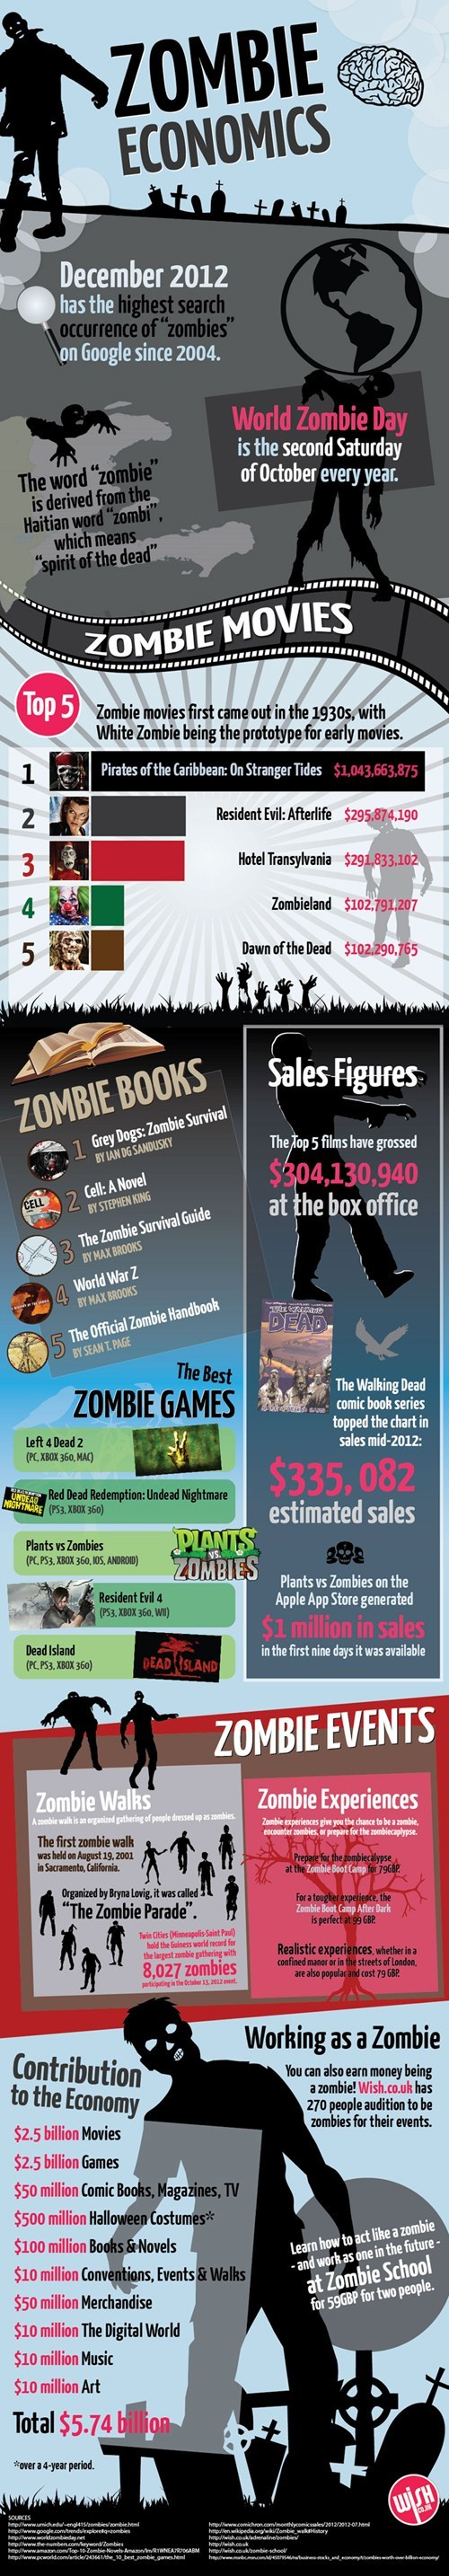 How Much is The Zombie Economy Worth? [Infographic]